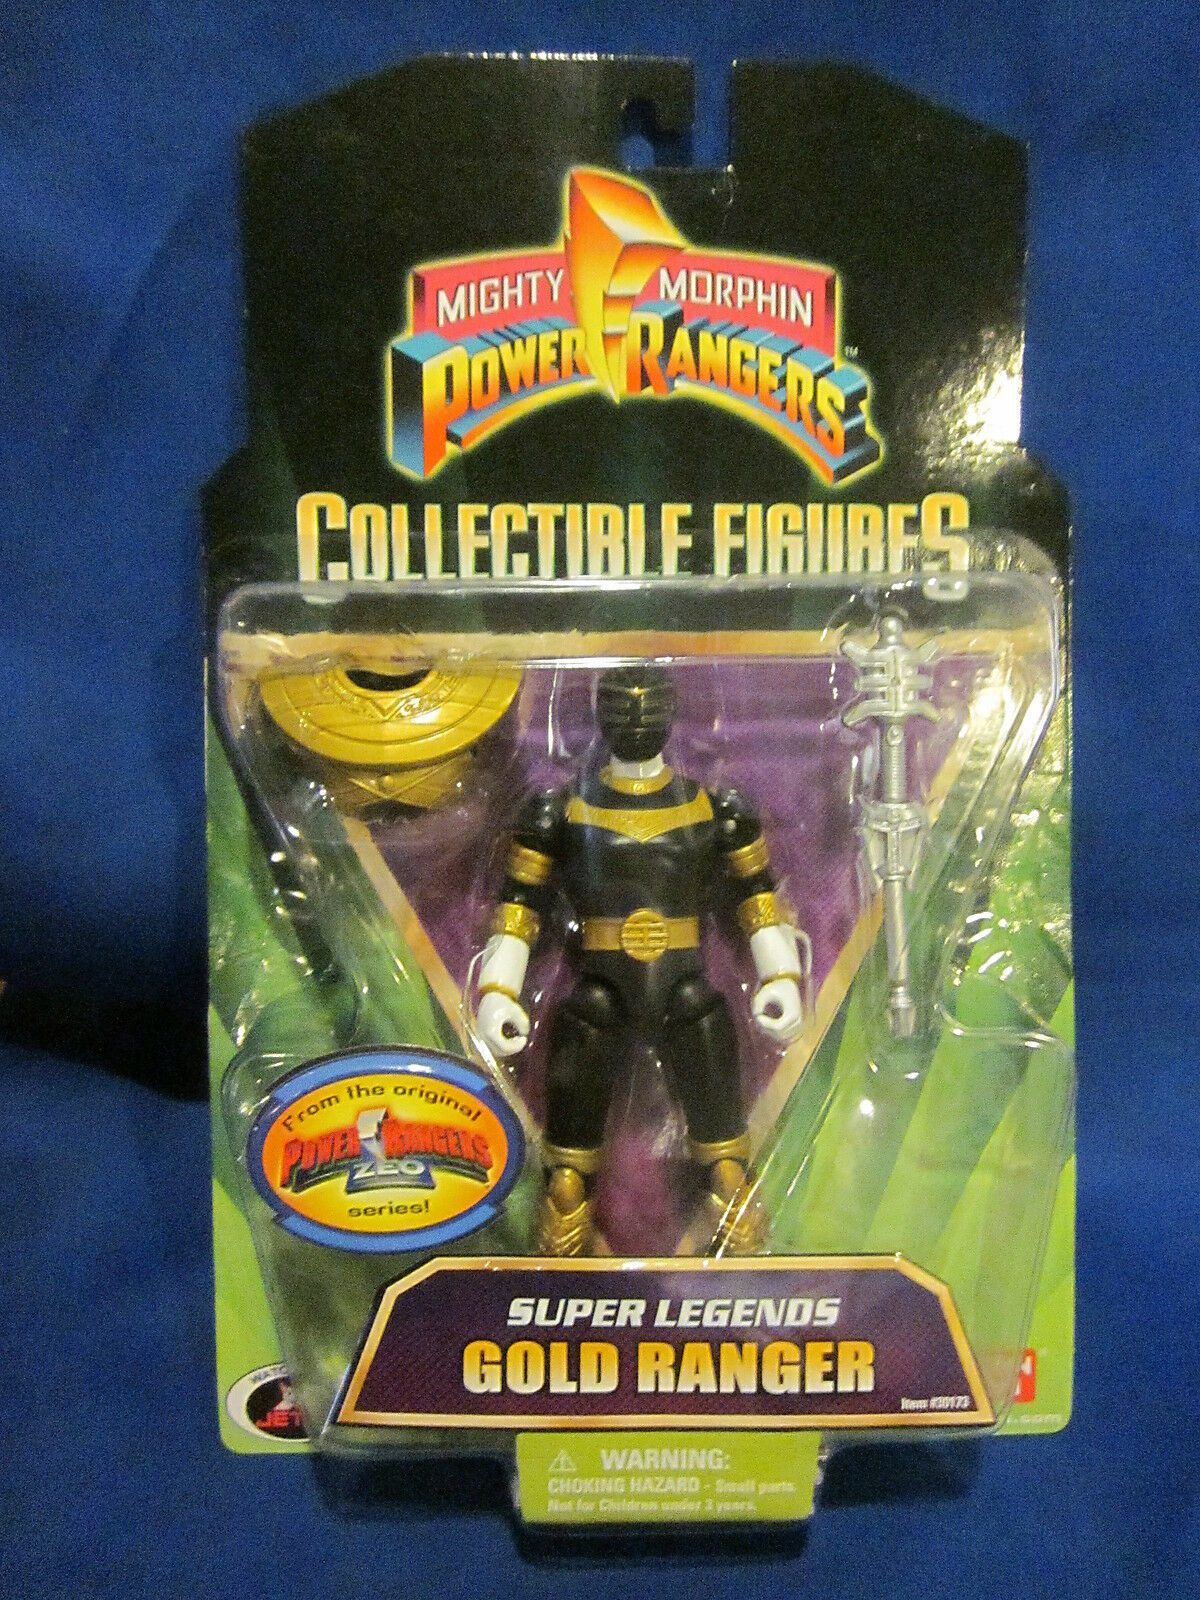 2008 Mighty Morphin Power Rangers Collectible Figure oro Ranger Sealed